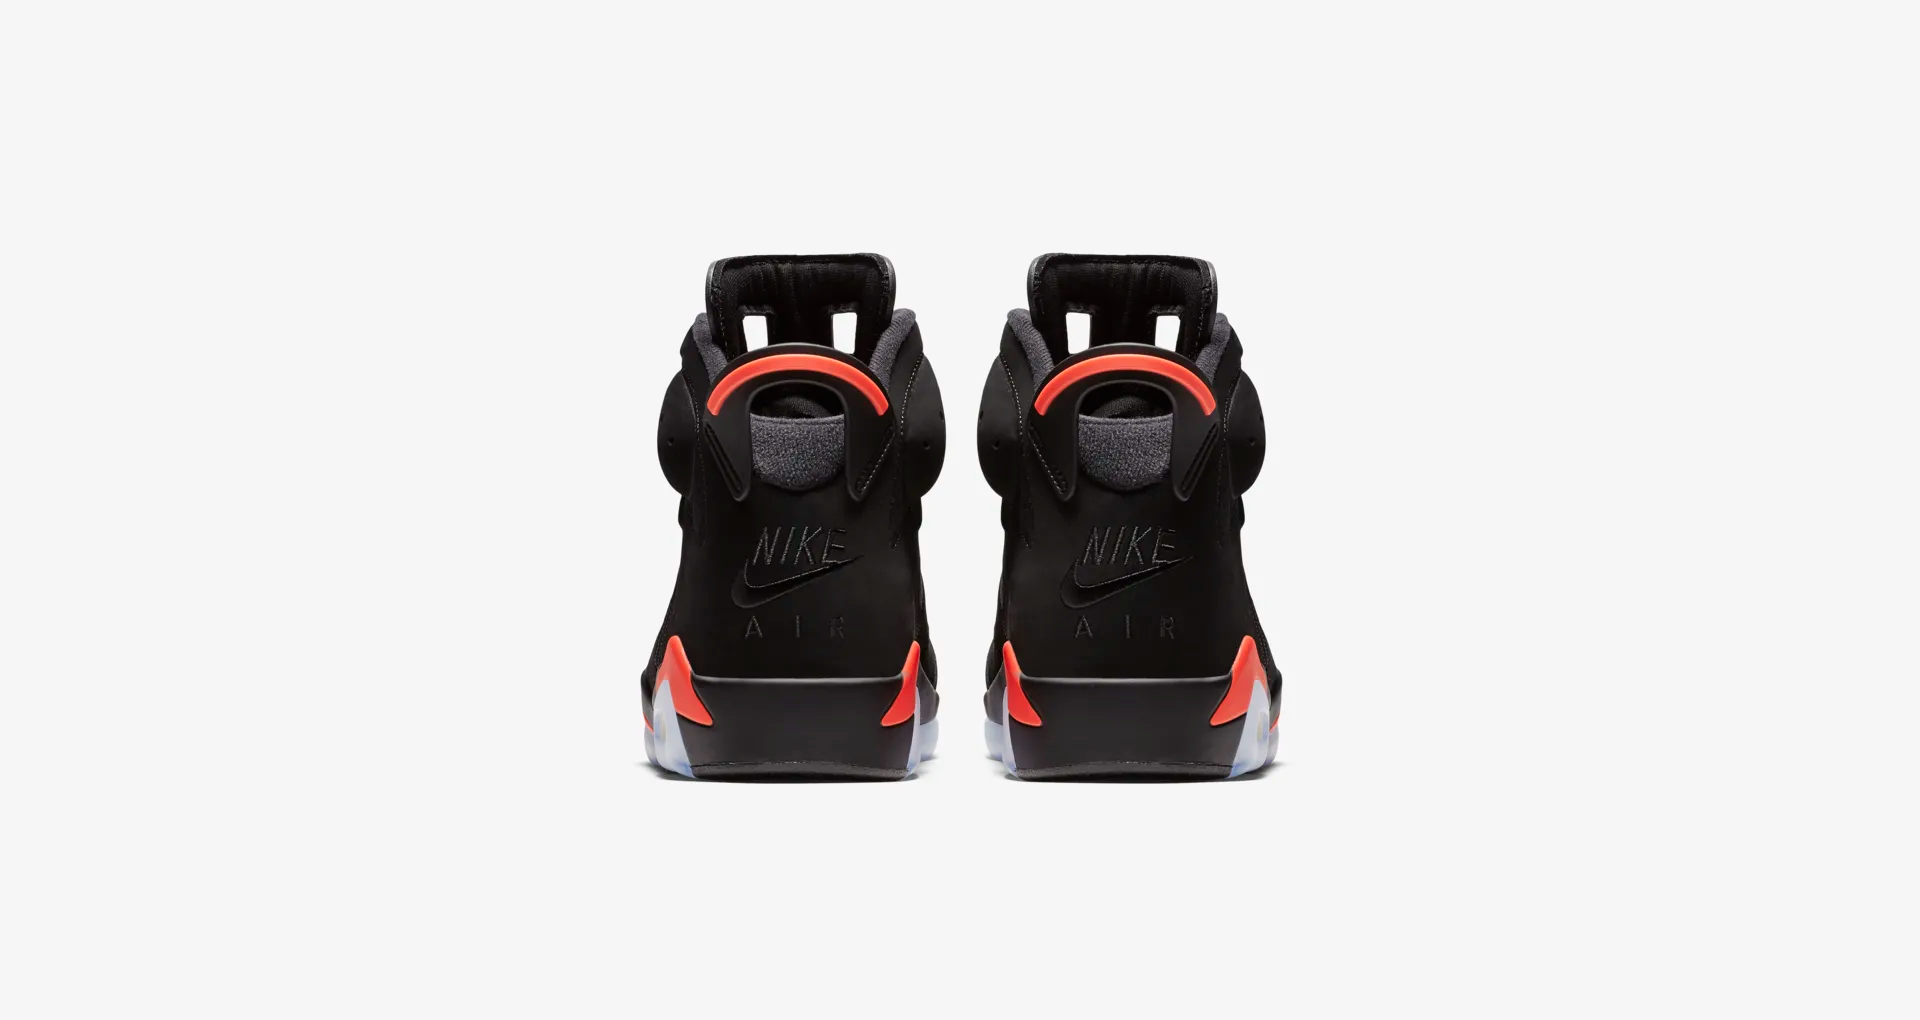 384664 060 Air Jordan 6 Retro Black Infrared OG 6